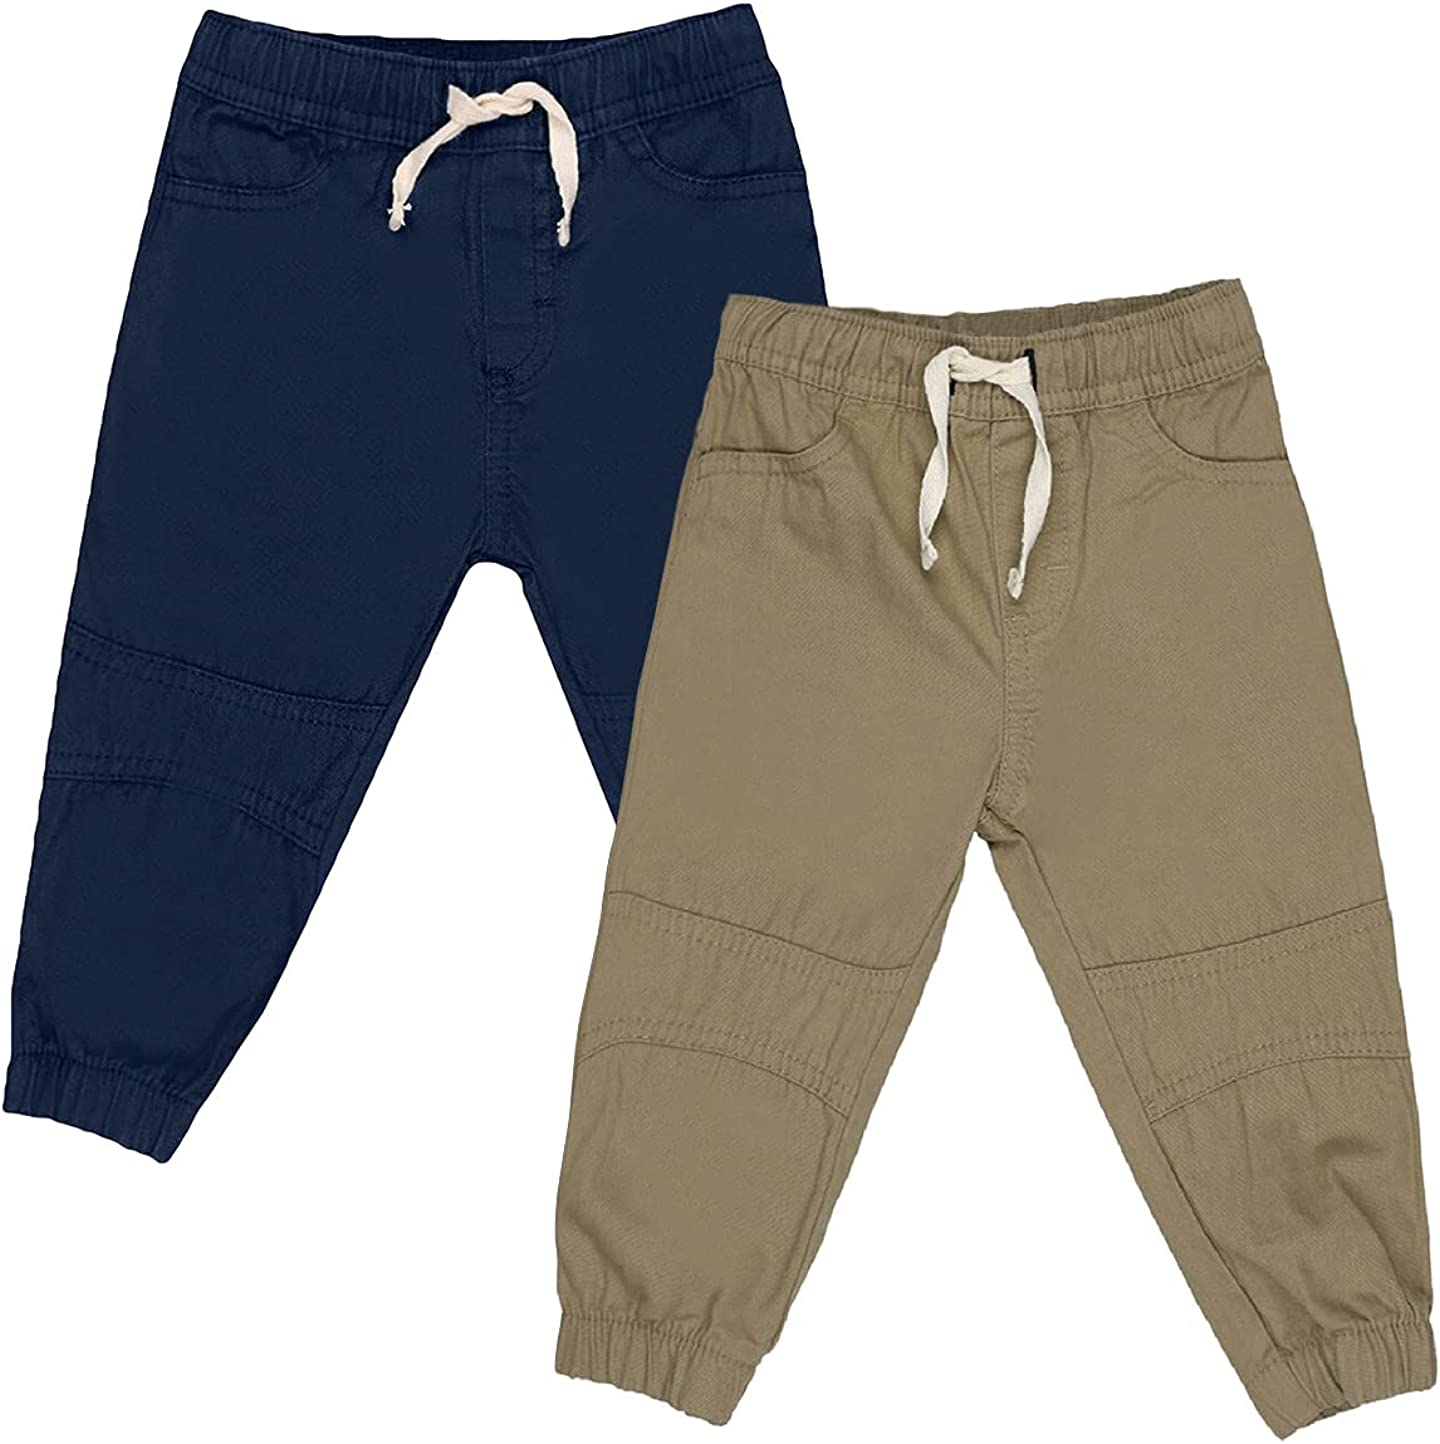 2-Pack Set Baby boy and Toddler - Canvas Jogger Pants - Clothes for Toddler and Kids